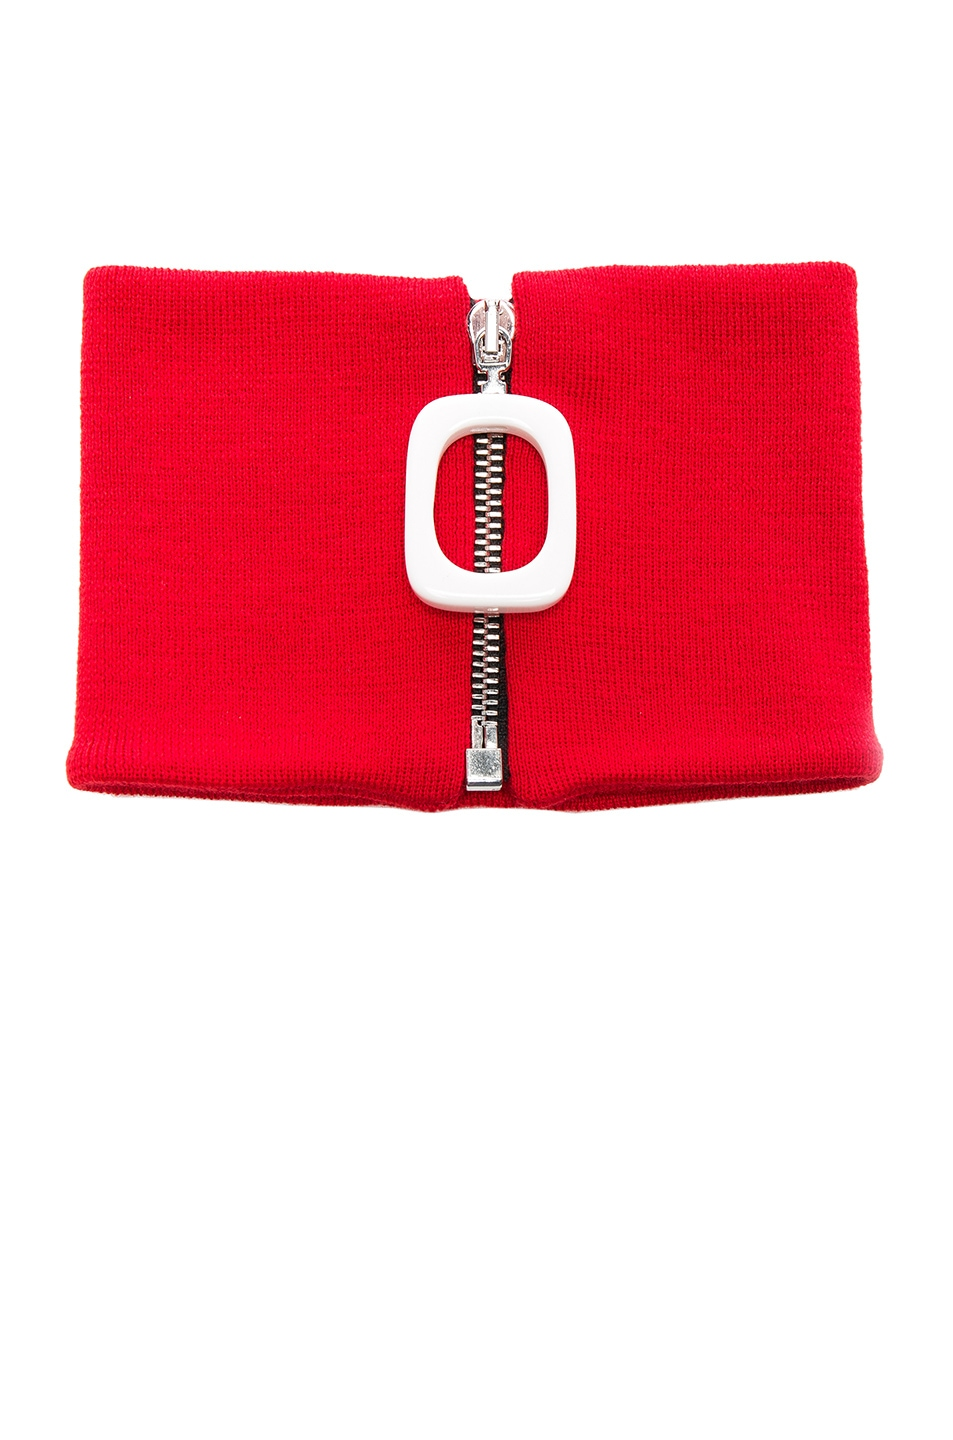 Image 1 of JW Anderson Jwa Neckband in Pillabox Red